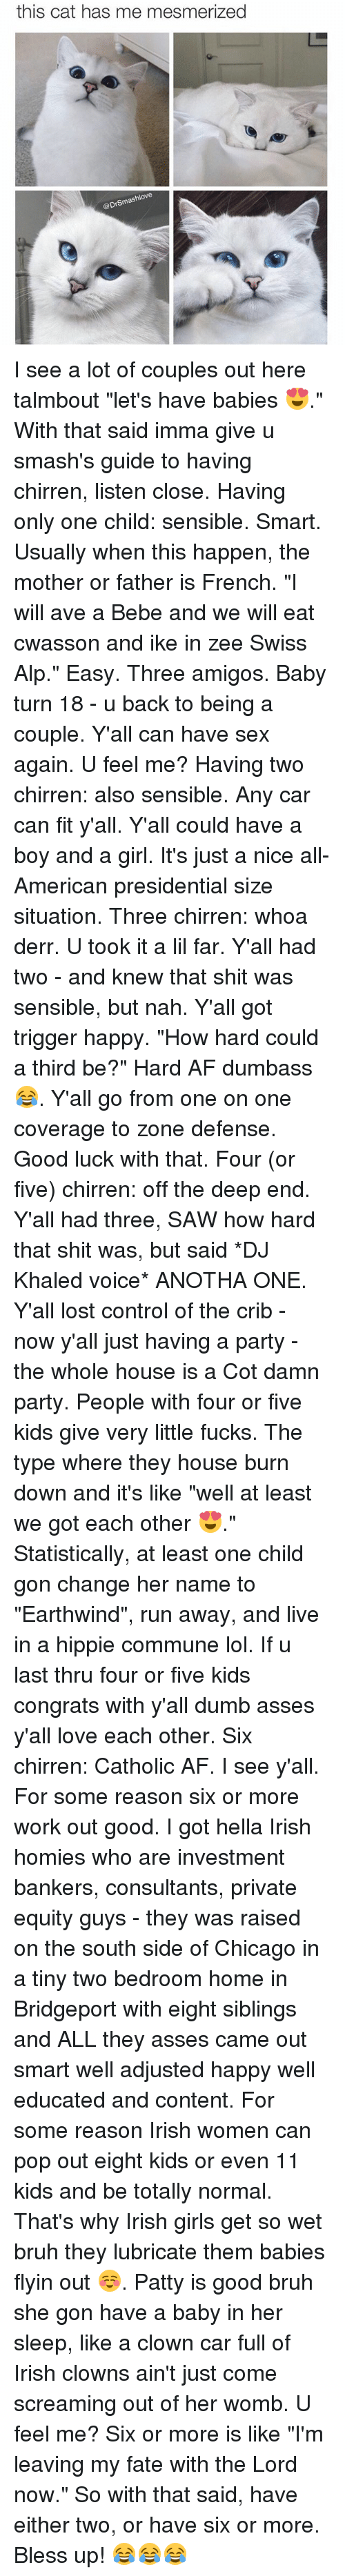 """three amigos: this cat has me mesmerized  @DrSmashlove I see a lot of couples out here talmbout """"let's have babies 😍."""" With that said imma give u smash's guide to having chirren, listen close. Having only one child: sensible. Smart. Usually when this happen, the mother or father is French. """"I will ave a Bebe and we will eat cwasson and ike in zee Swiss Alp."""" Easy. Three amigos. Baby turn 18 - u back to being a couple. Y'all can have sex again. U feel me? Having two chirren: also sensible. Any car can fit y'all. Y'all could have a boy and a girl. It's just a nice all-American presidential size situation. Three chirren: whoa derr. U took it a lil far. Y'all had two - and knew that shit was sensible, but nah. Y'all got trigger happy. """"How hard could a third be?"""" Hard AF dumbass 😂. Y'all go from one on one coverage to zone defense. Good luck with that. Four (or five) chirren: off the deep end. Y'all had three, SAW how hard that shit was, but said *DJ Khaled voice* ANOTHA ONE. Y'all lost control of the crib - now y'all just having a party - the whole house is a Cot damn party. People with four or five kids give very little fucks. The type where they house burn down and it's like """"well at least we got each other 😍."""" Statistically, at least one child gon change her name to """"Earthwind"""", run away, and live in a hippie commune lol. If u last thru four or five kids congrats with y'all dumb asses y'all love each other. Six chirren: Catholic AF. I see y'all. For some reason six or more work out good. I got hella Irish homies who are investment bankers, consultants, private equity guys - they was raised on the south side of Chicago in a tiny two bedroom home in Bridgeport with eight siblings and ALL they asses came out smart well adjusted happy well educated and content. For some reason Irish women can pop out eight kids or even 11 kids and be totally normal. That's why Irish girls get so wet bruh they lubricate them babies flyin out ☺️. Patty is good bruh she gon have a baby in """